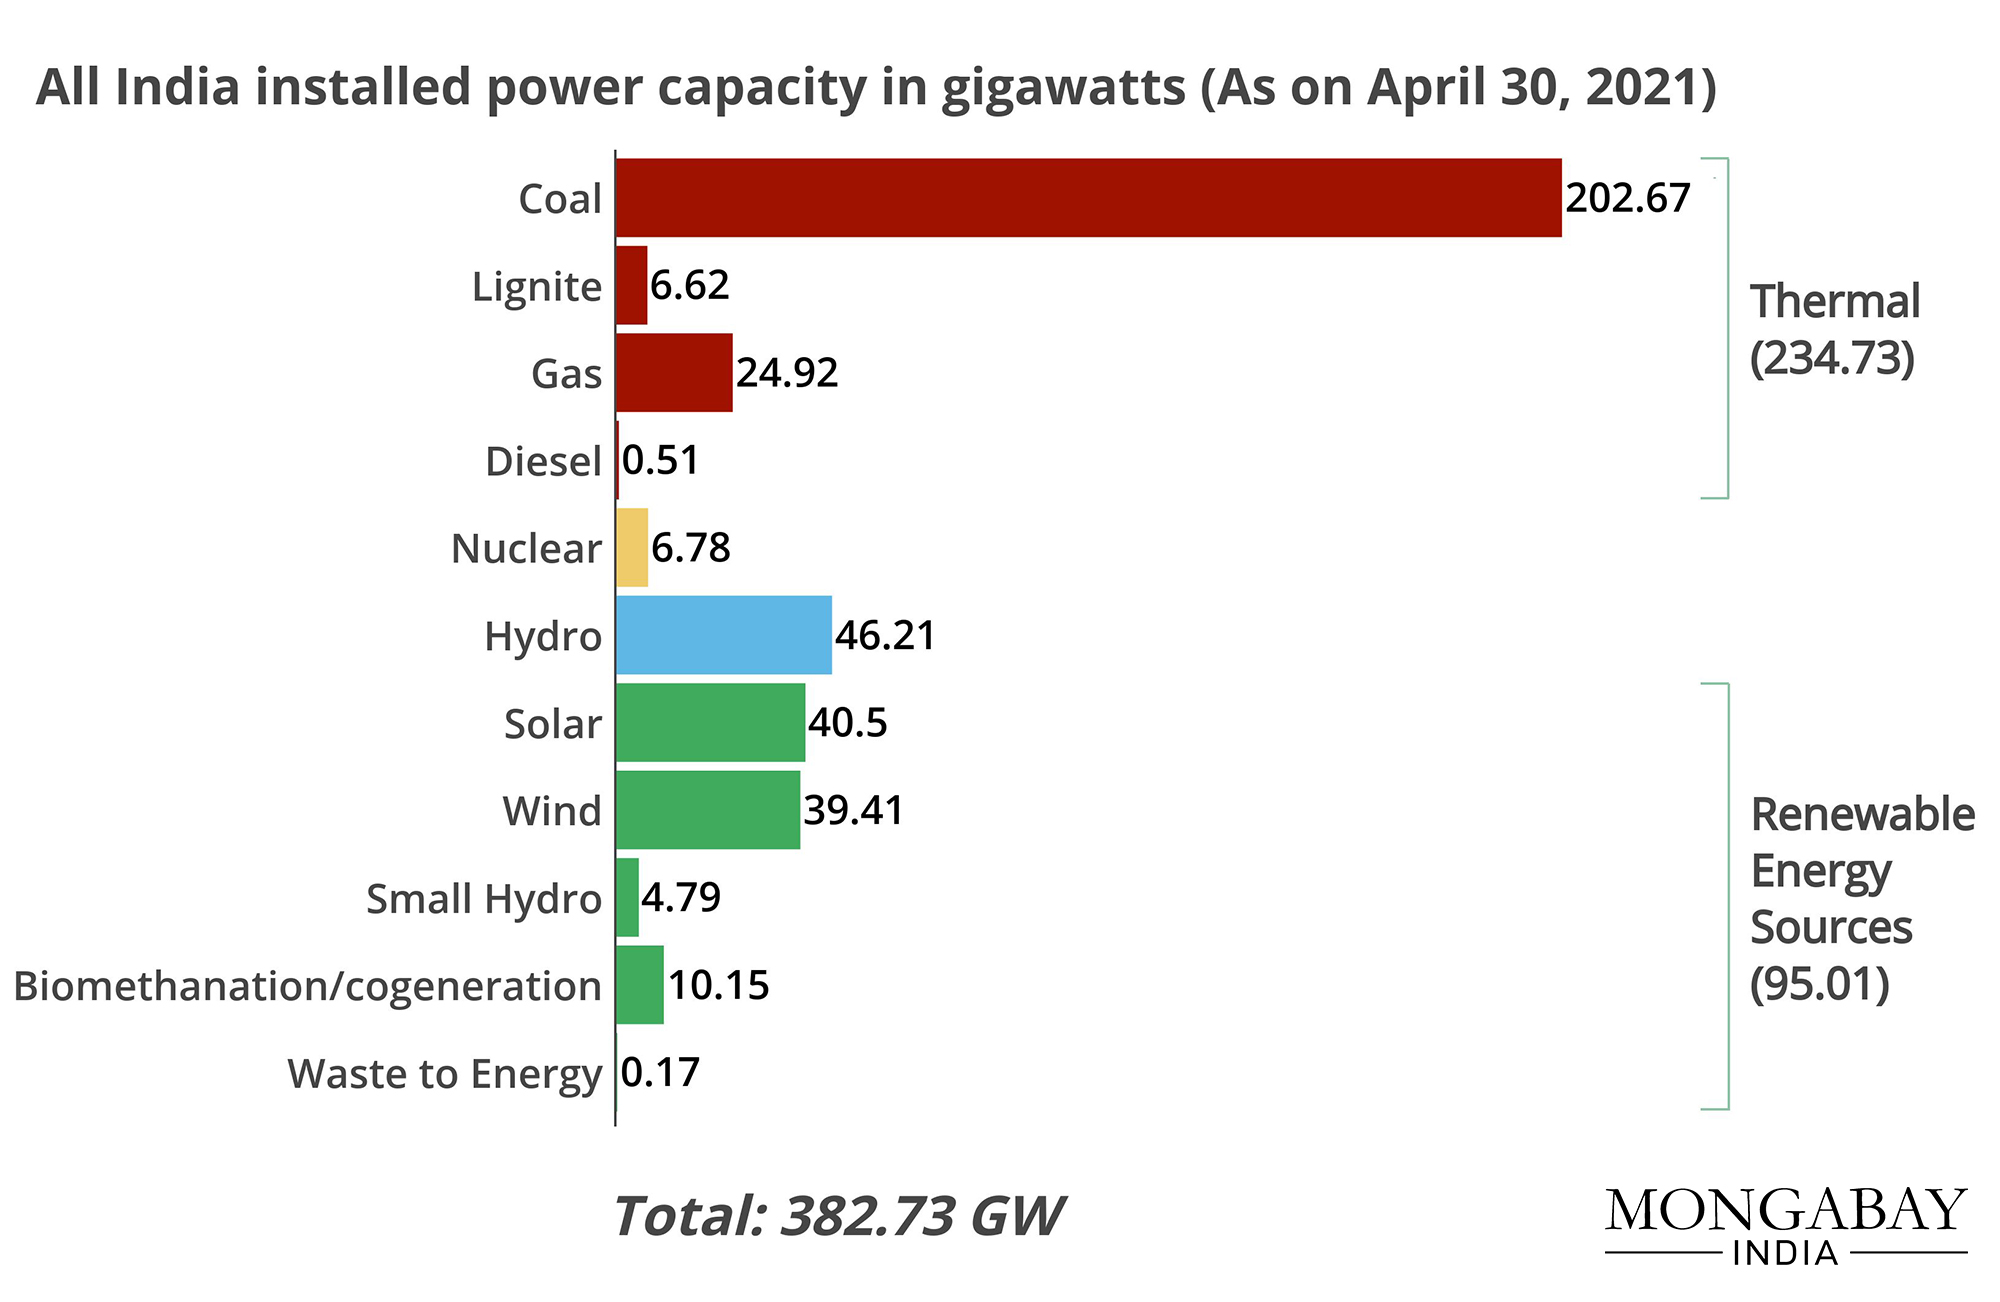 Data from Central Electricity Authority.